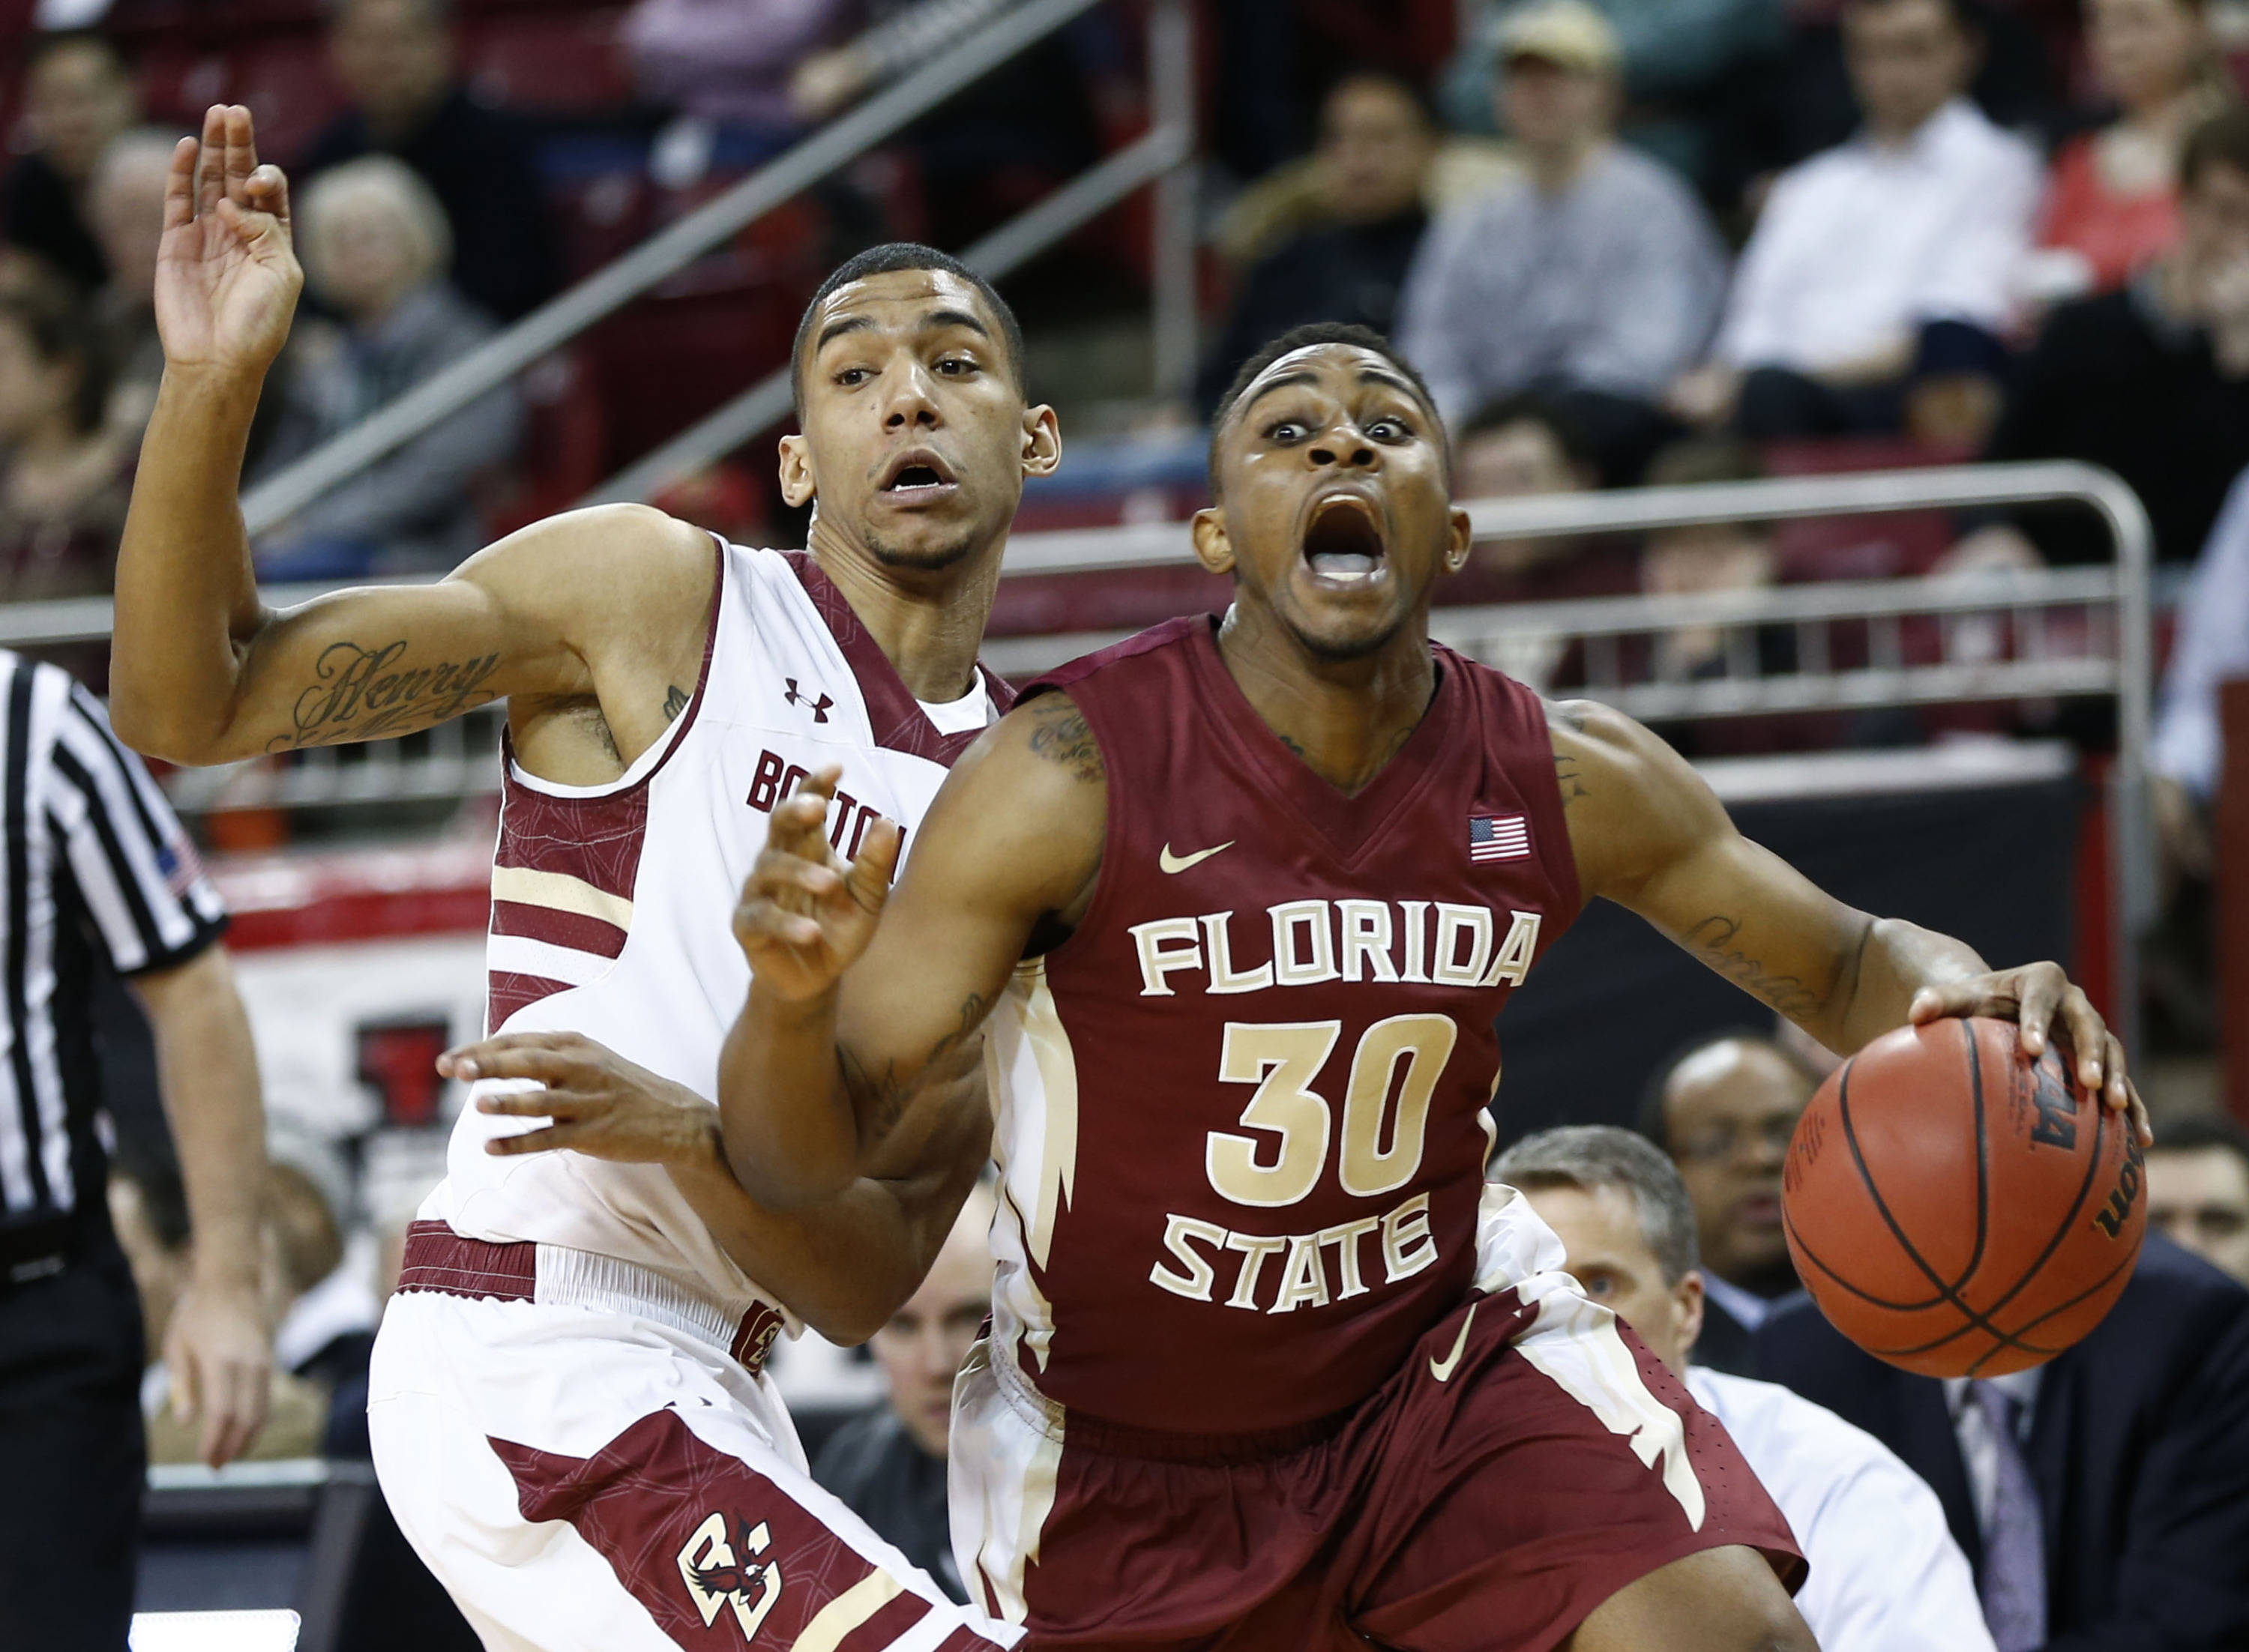 Mar 4, 2014; Chestnut Hill, MA, USA; Seminoles guard Ian Miller (30) dribbles the ball against Boston College Eagles guard Olivier Hanlan (left) during the first half. Mark L. Baer-USA TODAY Sports